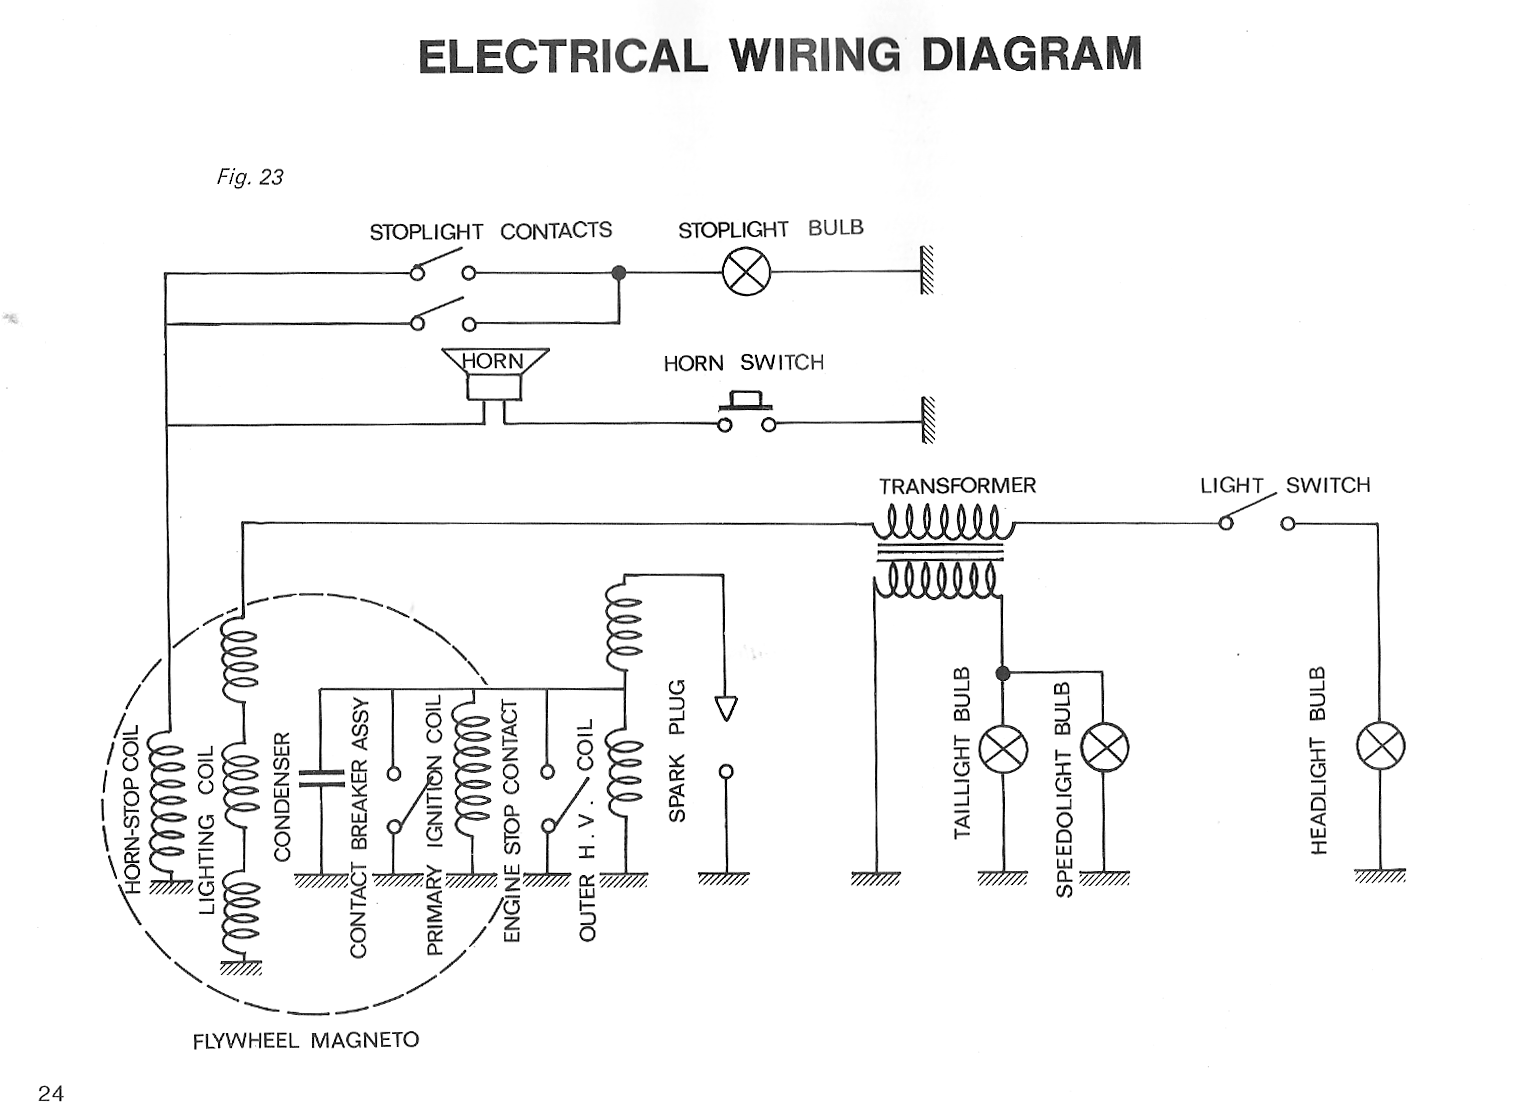 Peugeot Wiring Diagrams Moped Wiki 50cc Scooter Key Switch Diagram 102 2